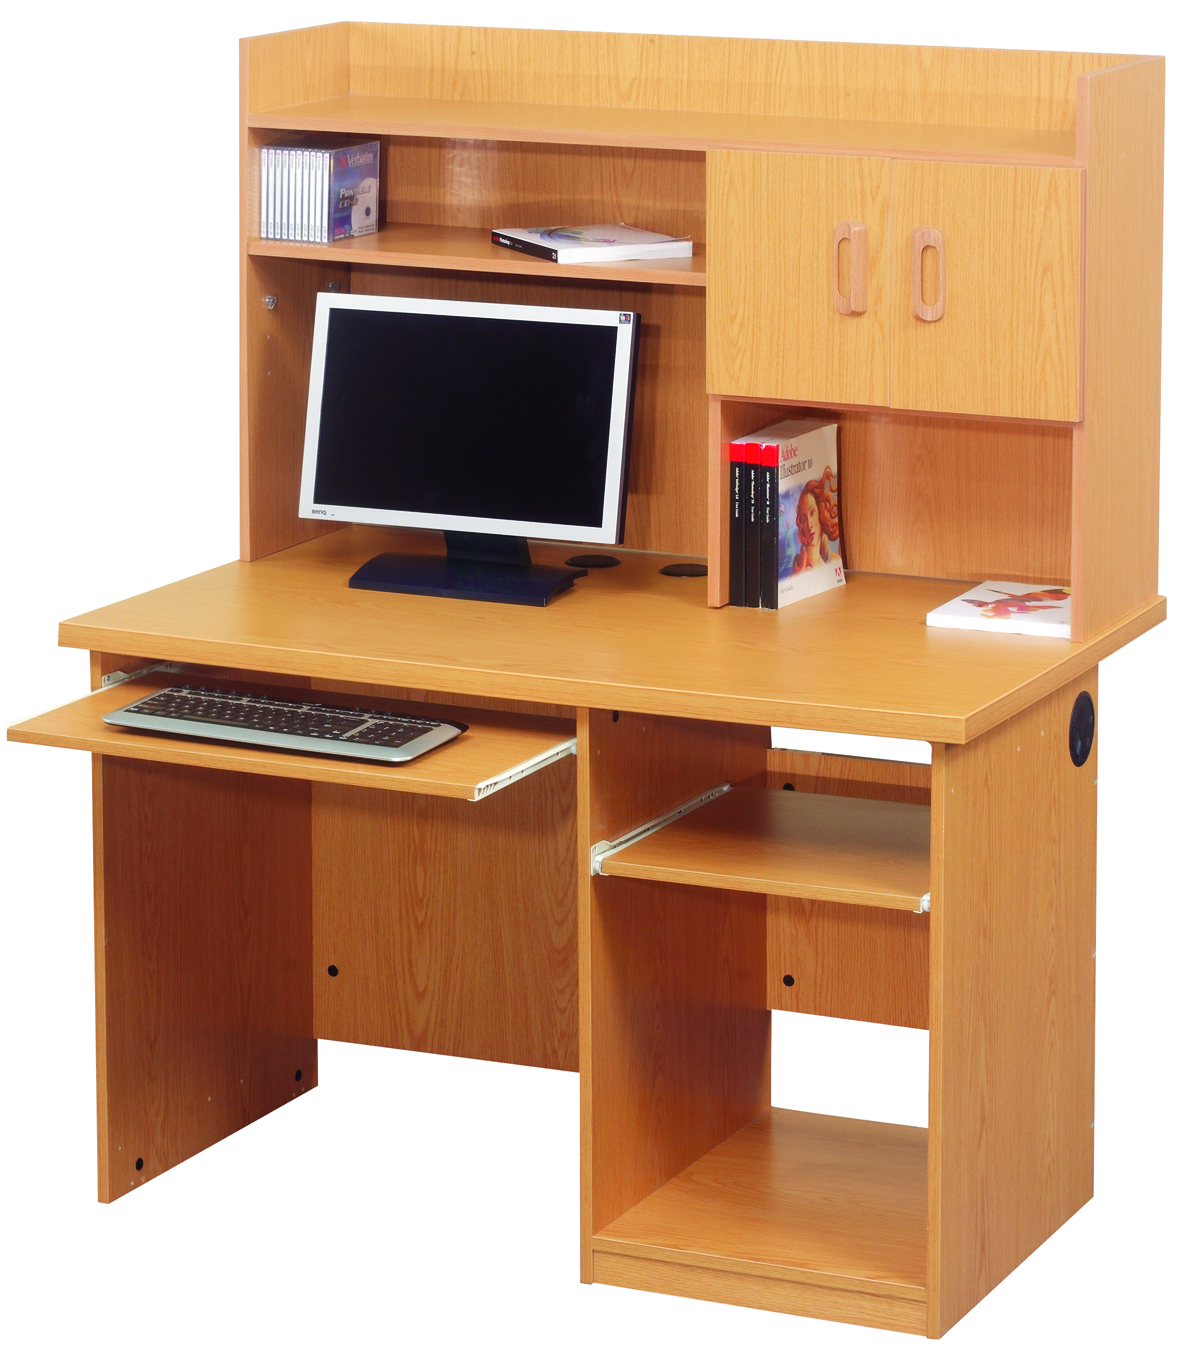 Meuble bureau ordinateur bureau pour ordinateur table for Meuble demeyere conforama